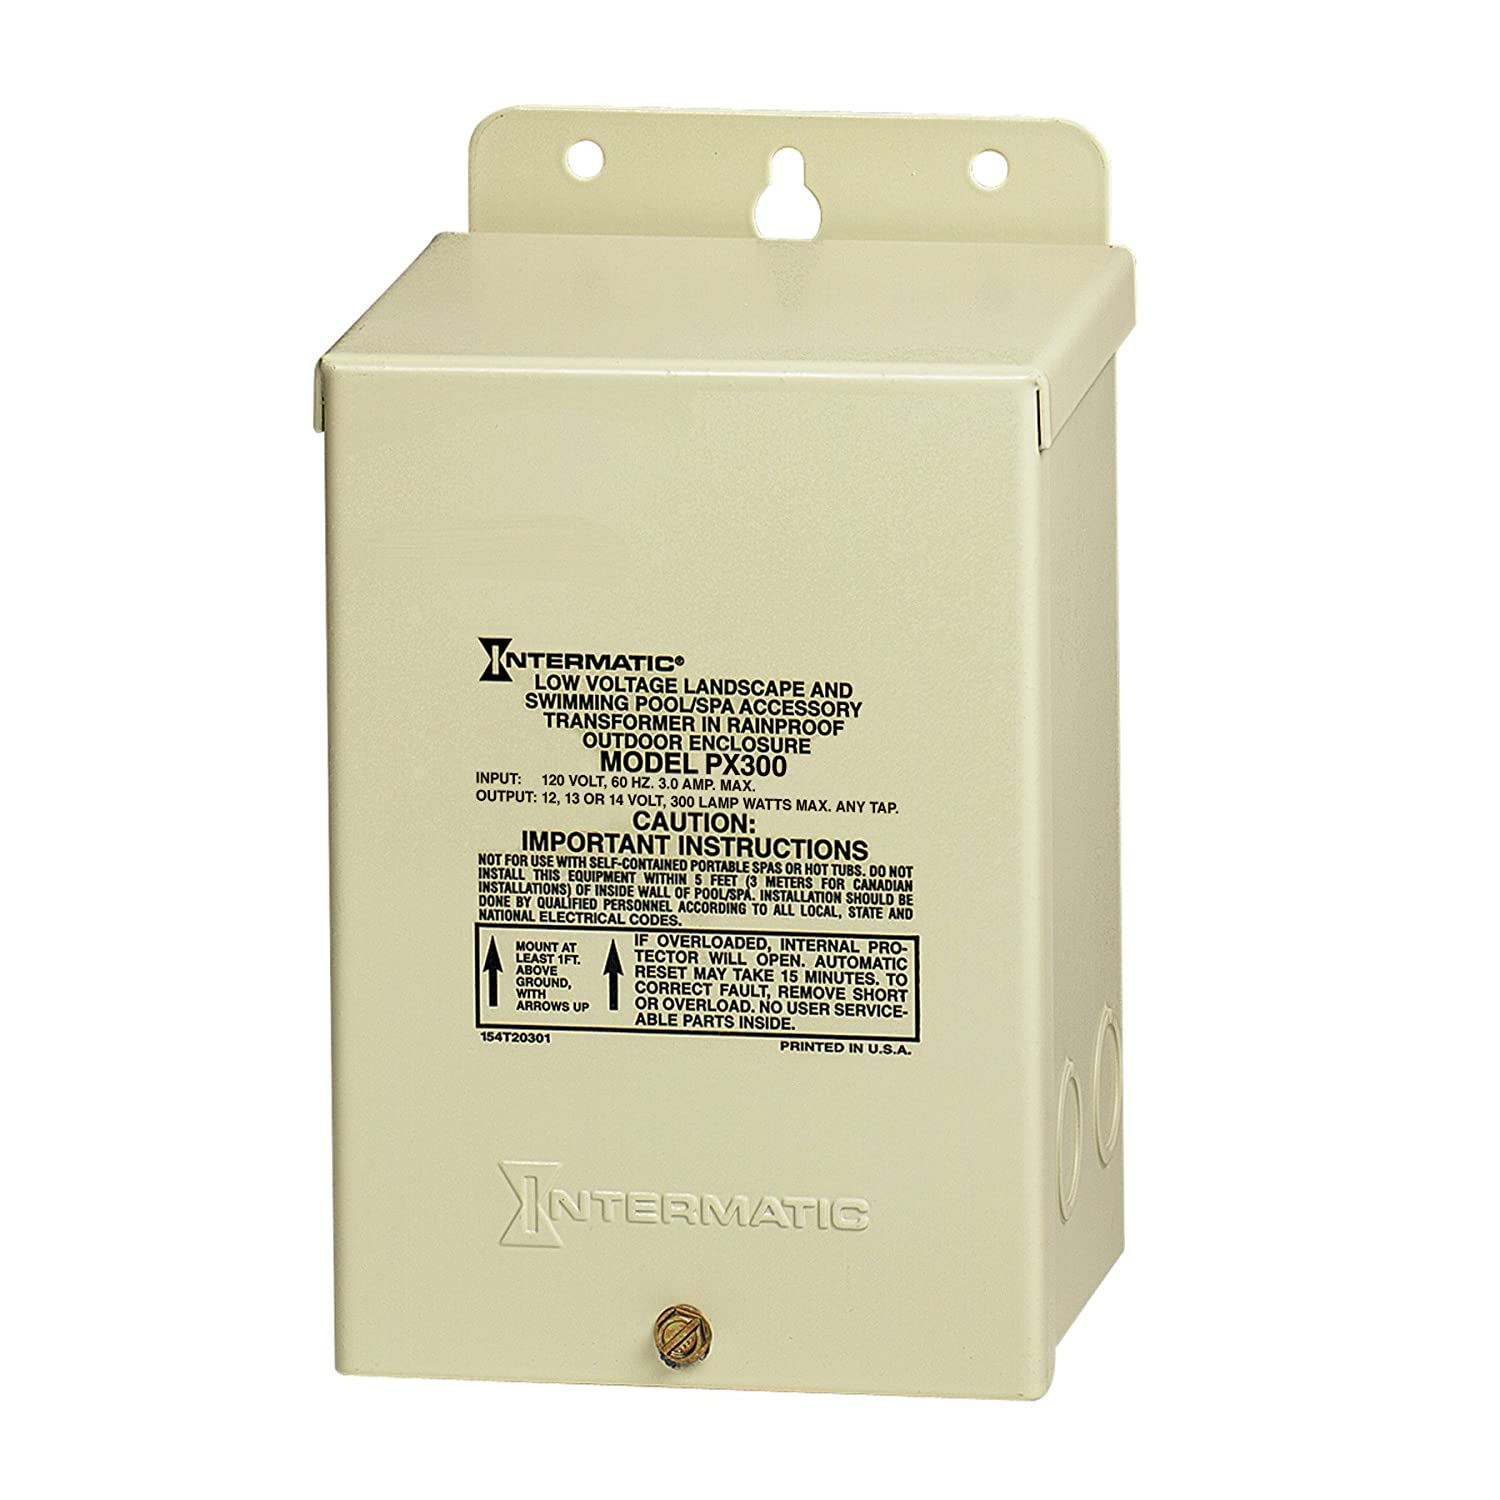 Amazon.com : Intermatic PX300 12V 300W Transformer with Automatic Circuit  Breaker : Pool Transformer : Garden & Outdoor